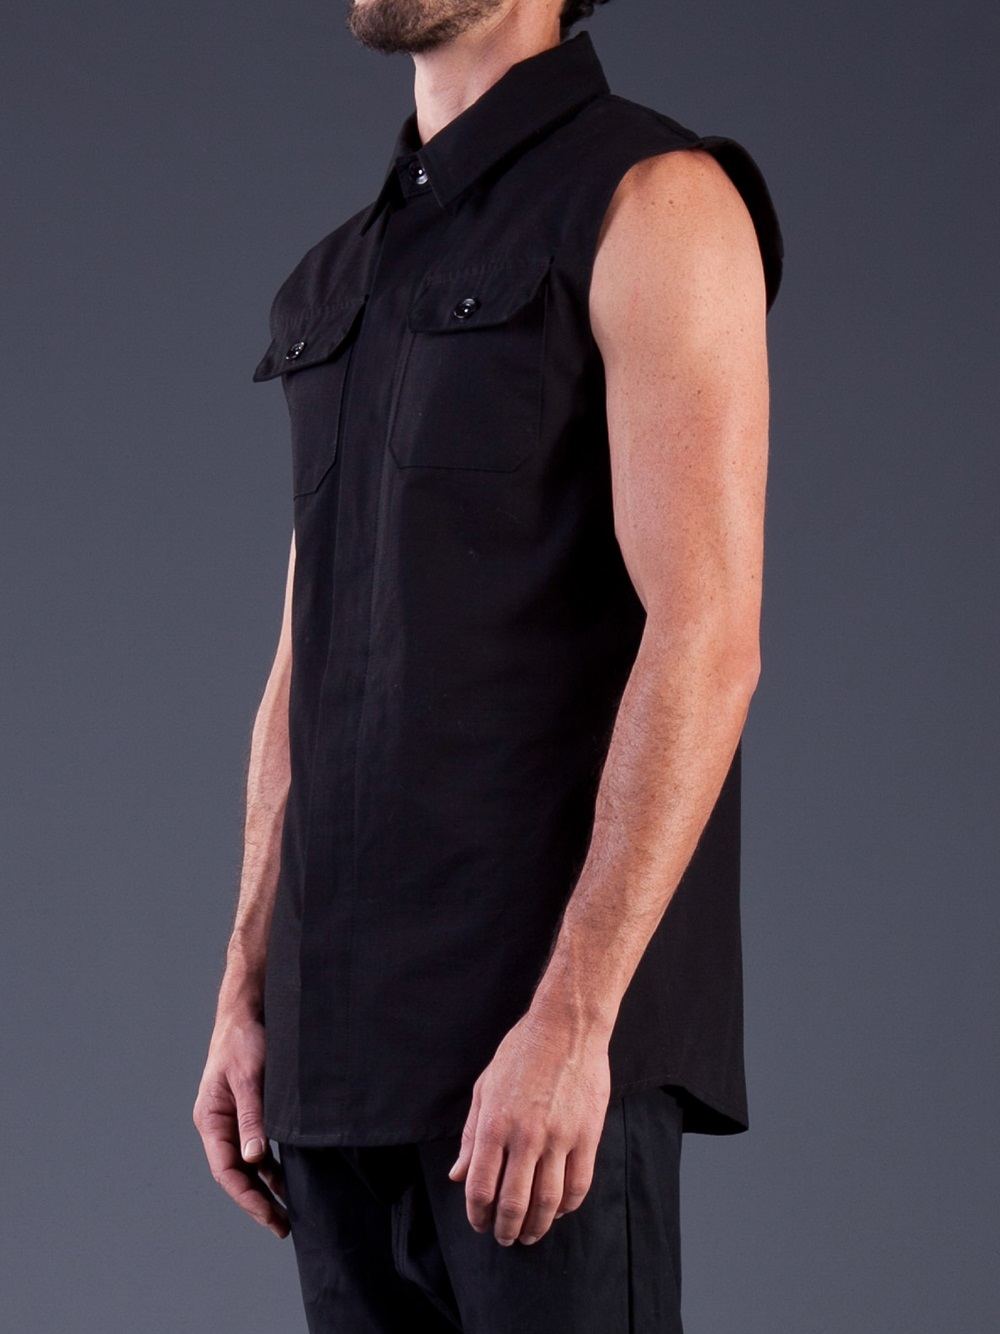 Odyn vovk sleeveless button up shirt in black for men lyst for Sleeveless cotton button down shirts